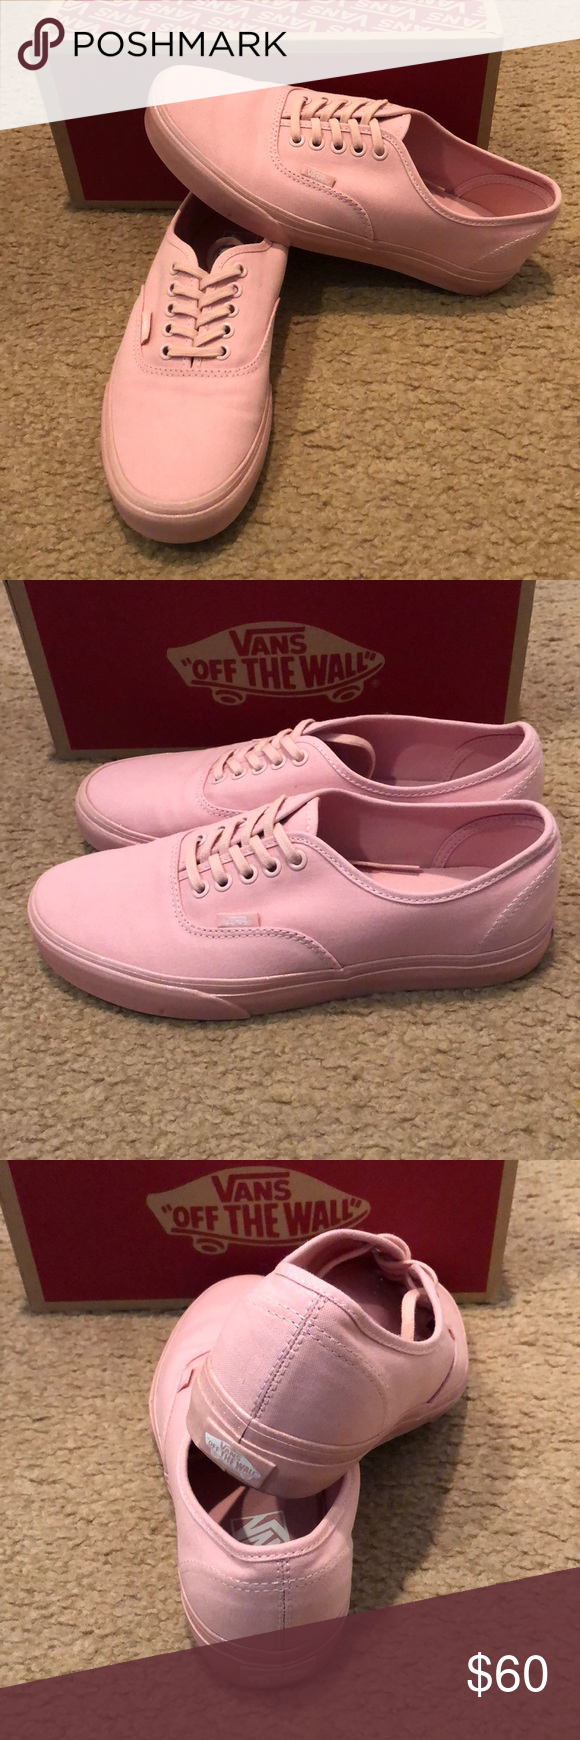 e5b957577a65 Metallic Glitter Authentic Lo Pro Vans New in box. Silver pink Vans Shoes  Sneakers